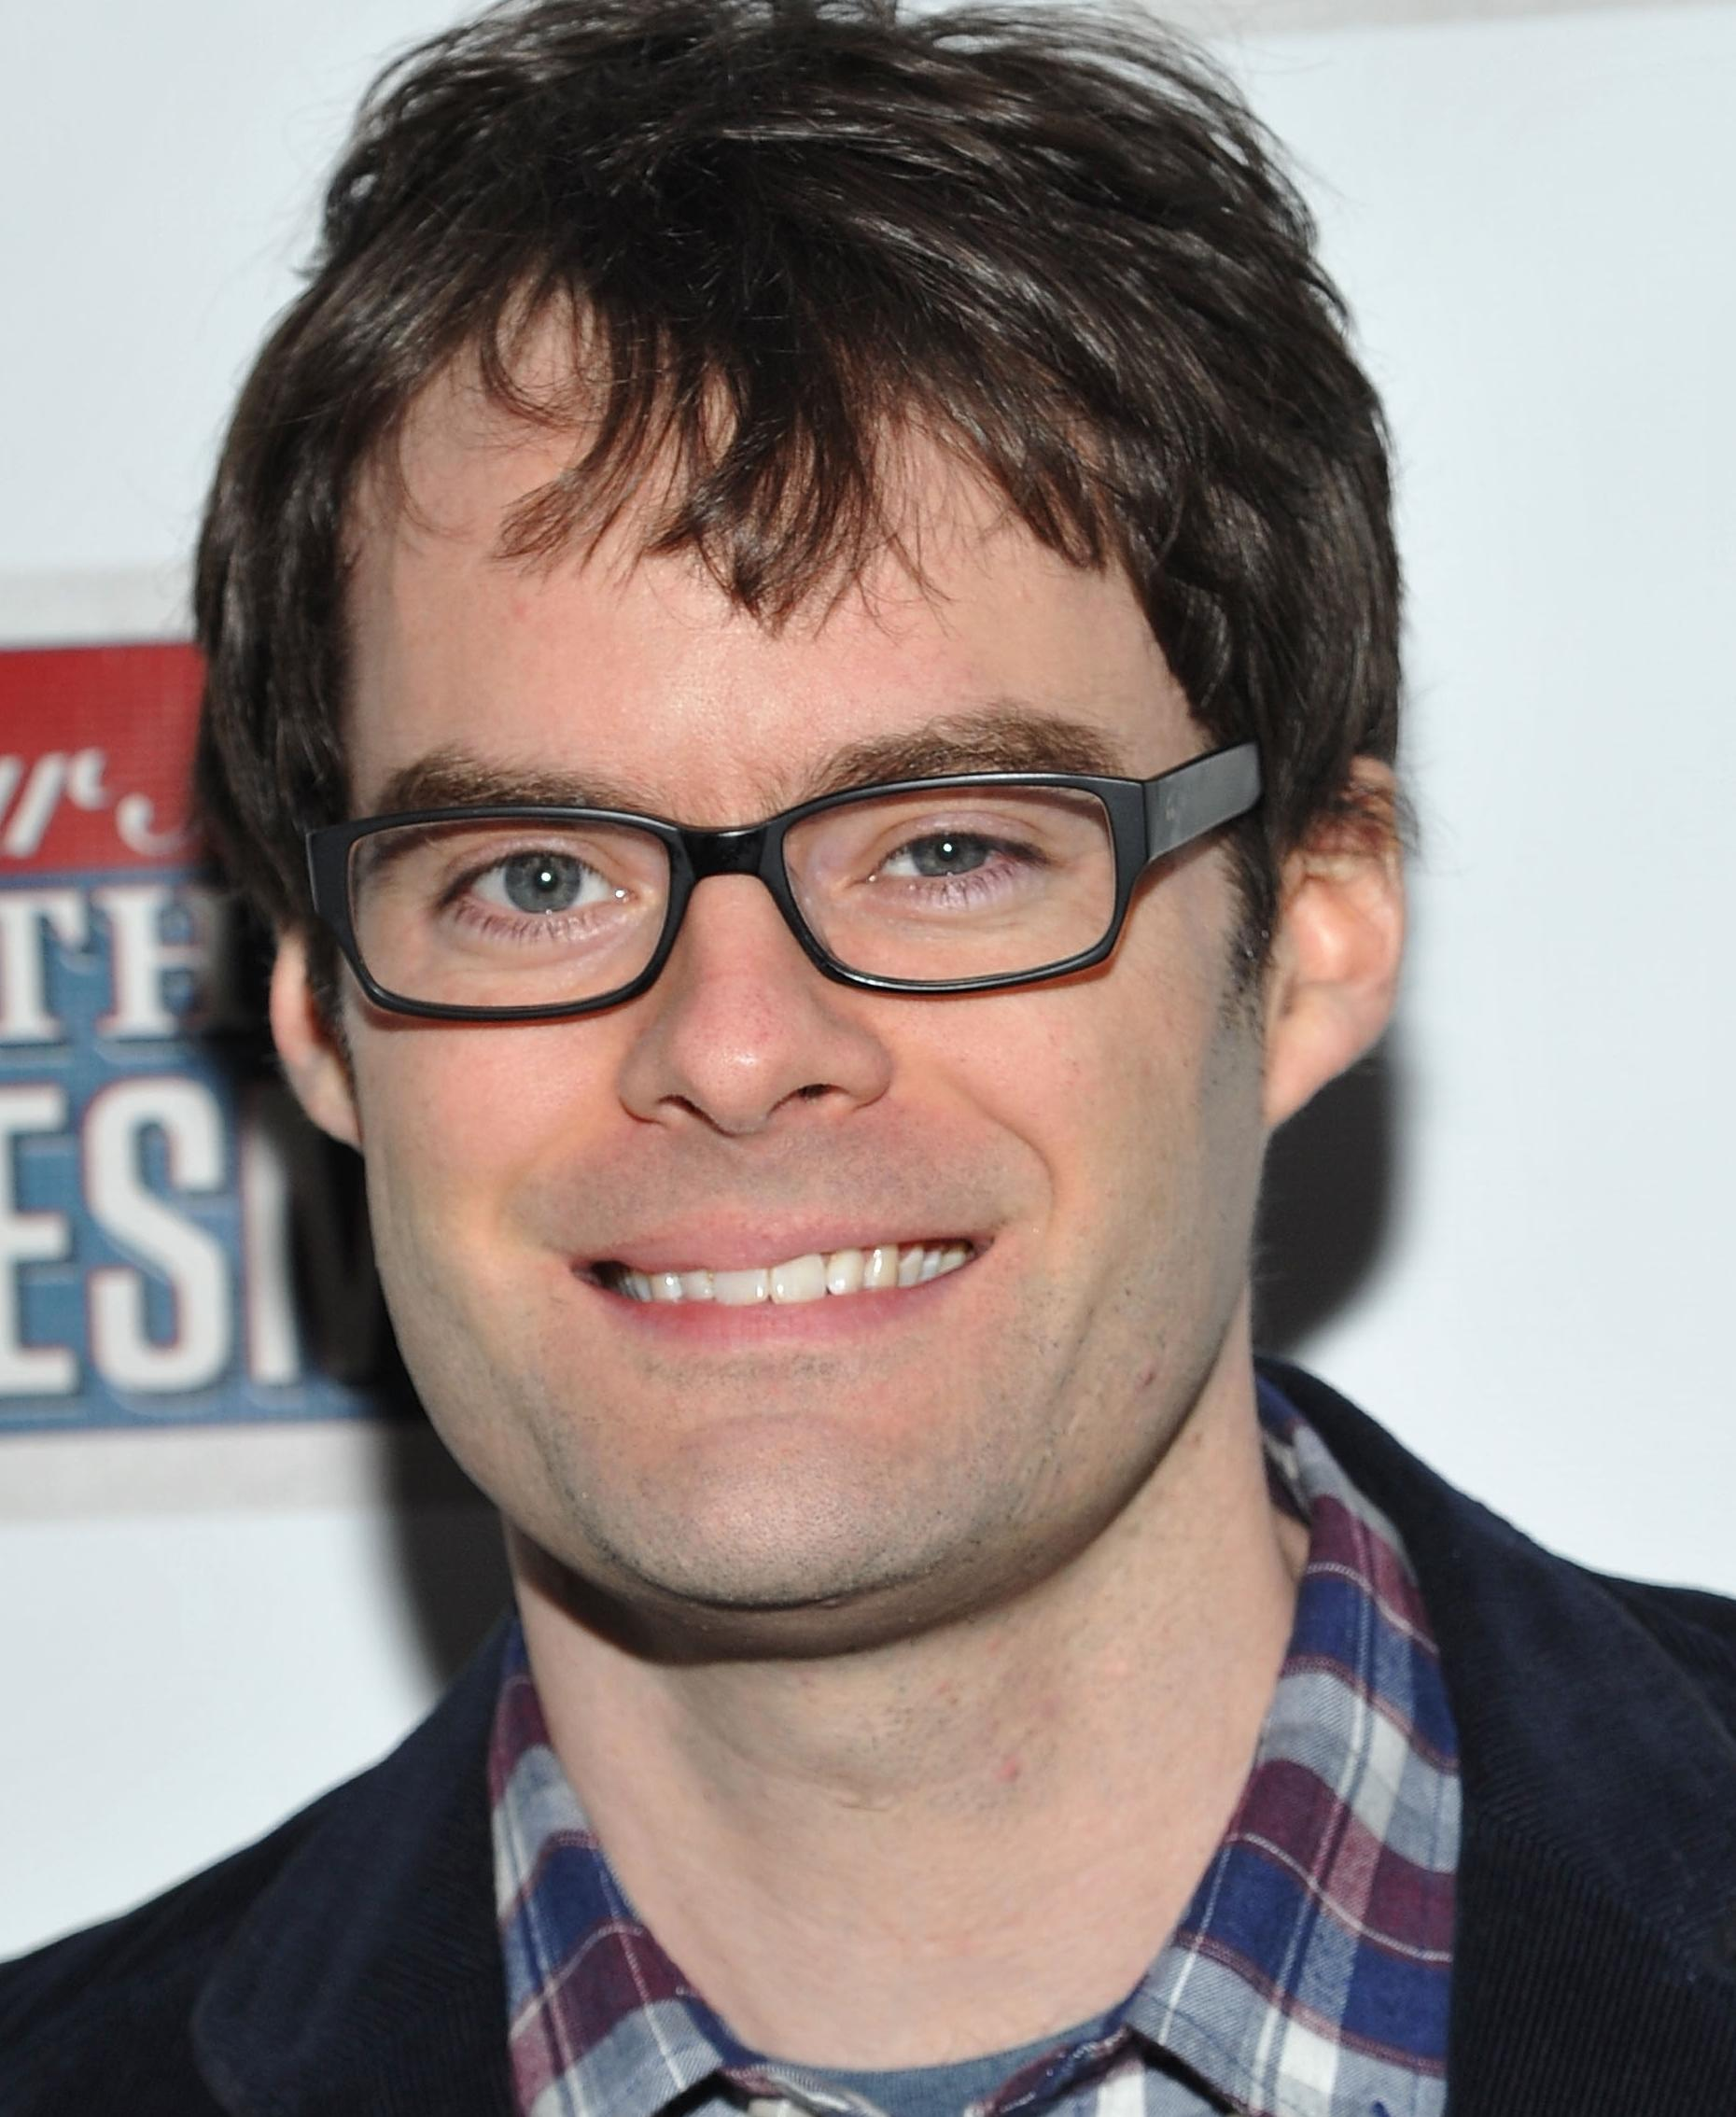 Bill Hader Was Nominated For An Emmy As Outstanding Supporting Actor In A Comedy Series For His Role As Stefon On Saturday Night Live